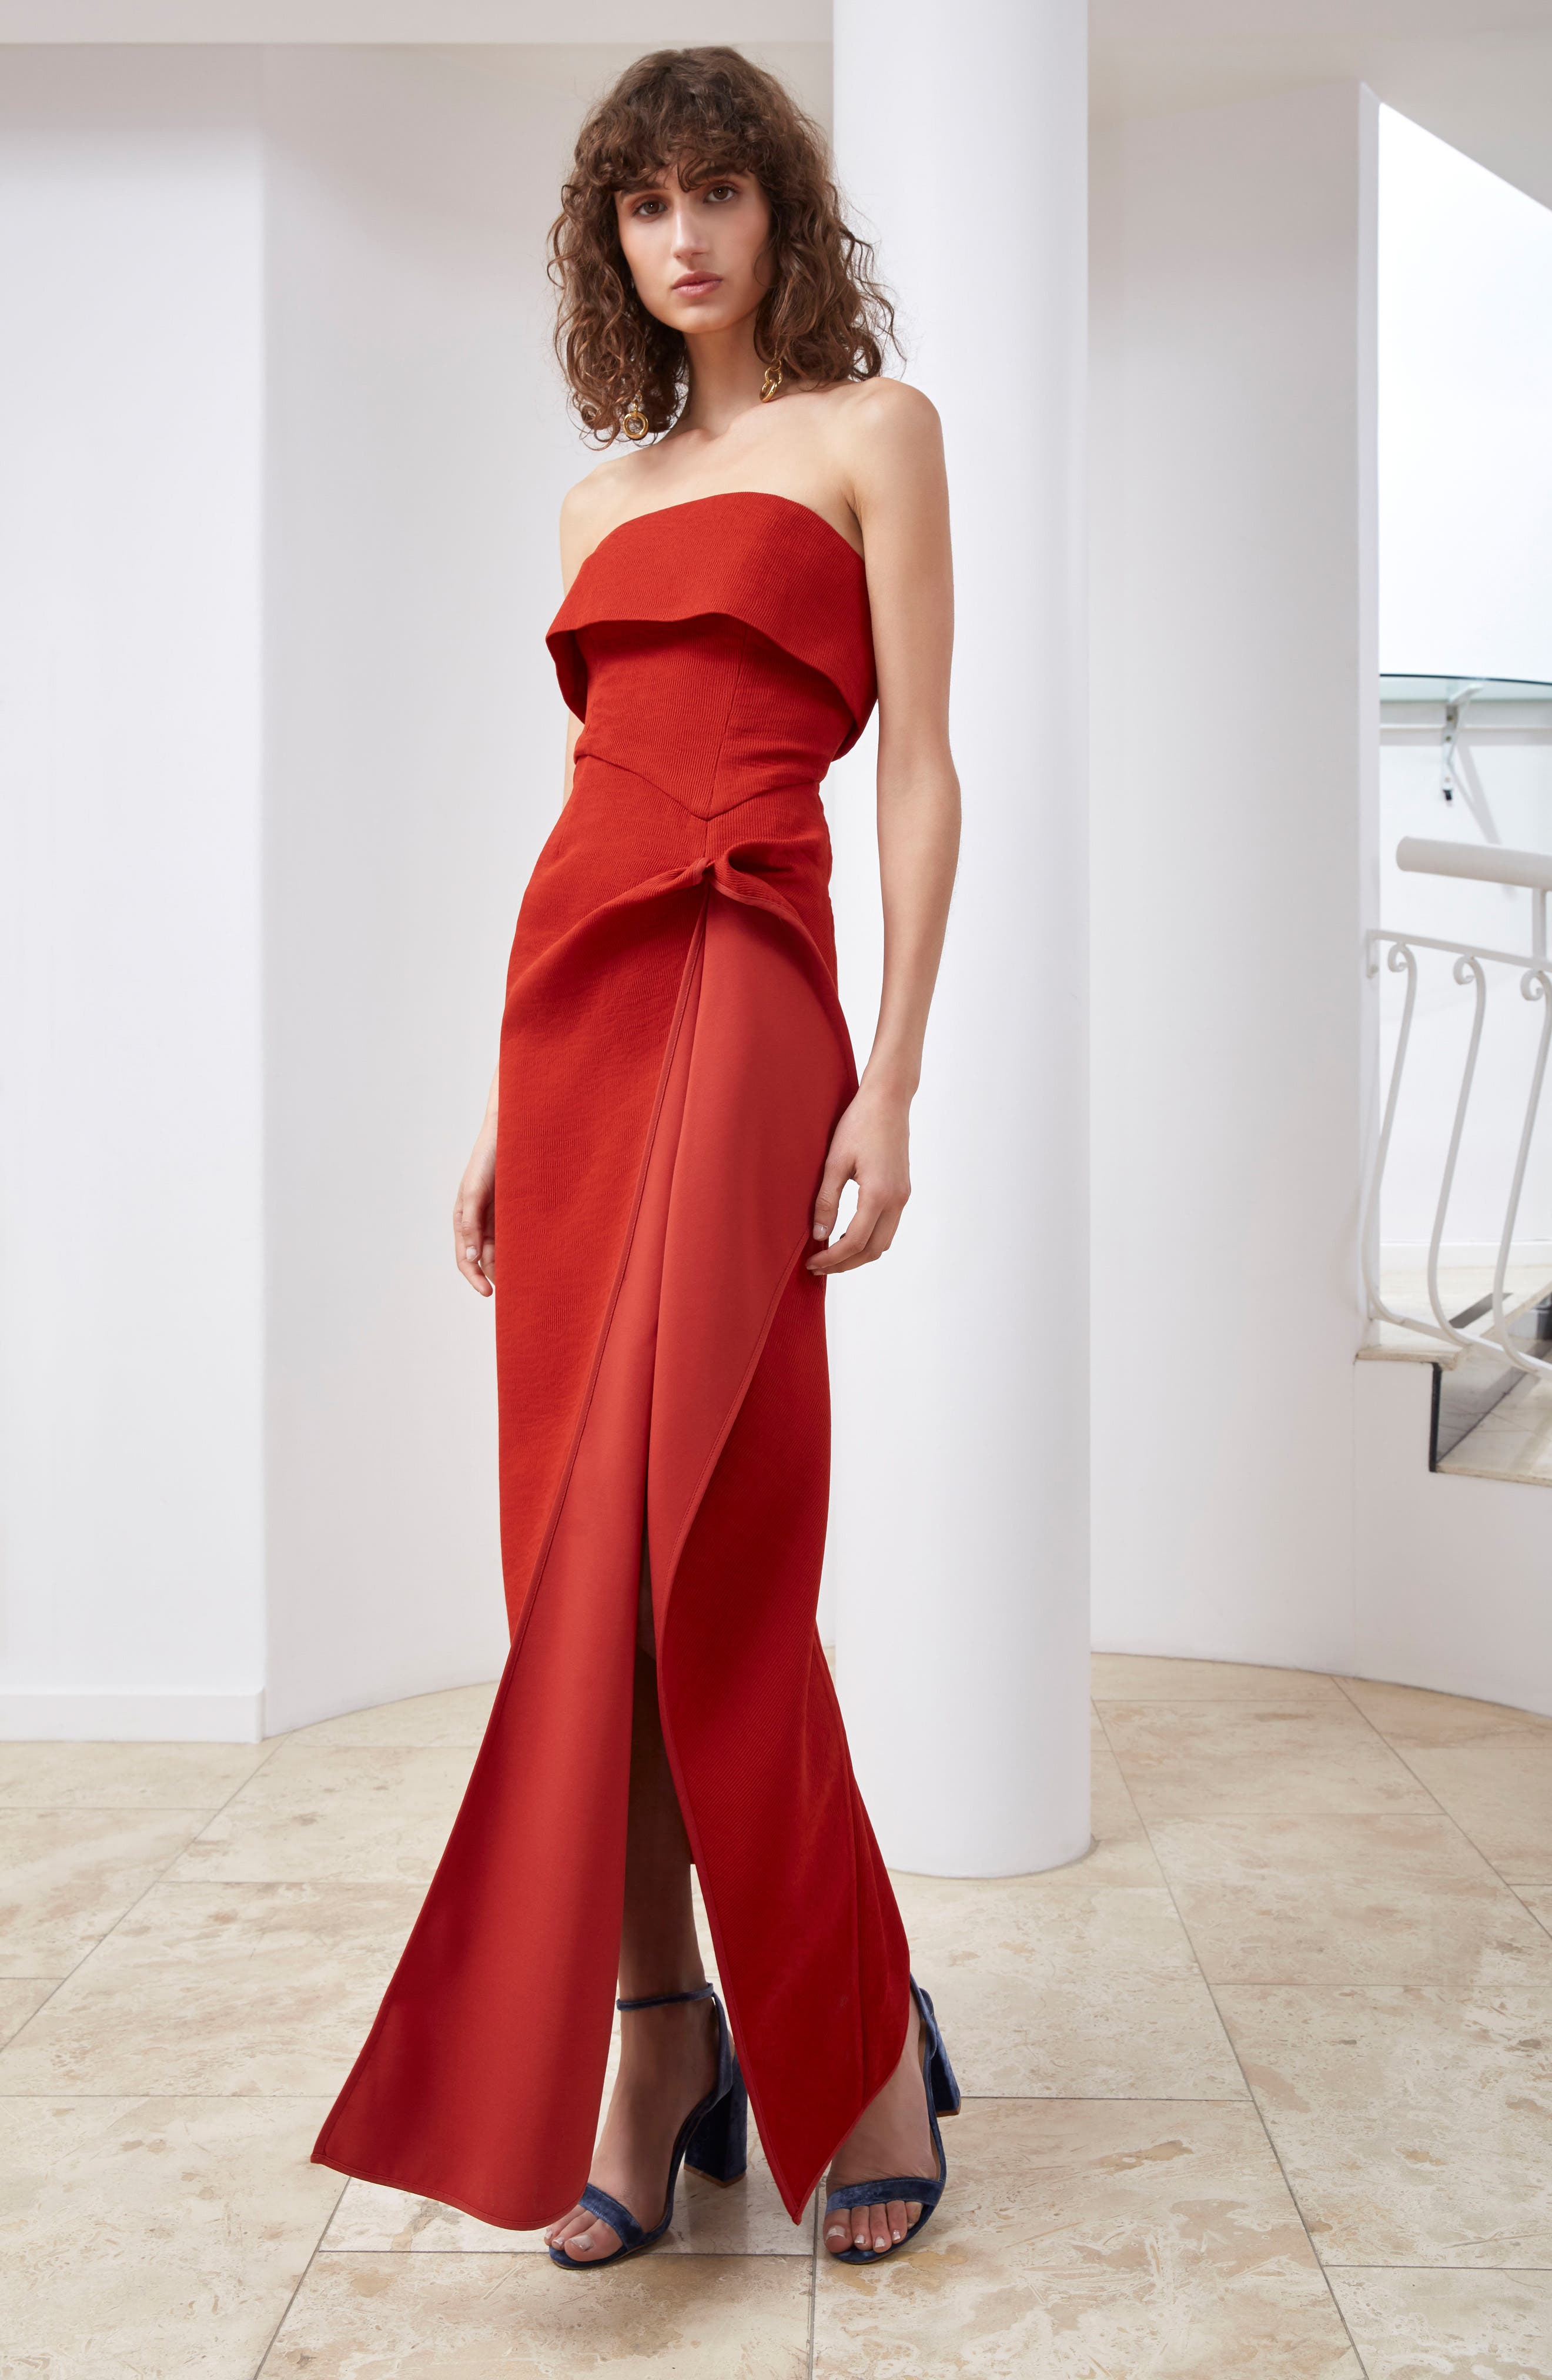 Fluidity Strapless Maxi Dress,                             Alternate thumbnail 2, color,                             Red